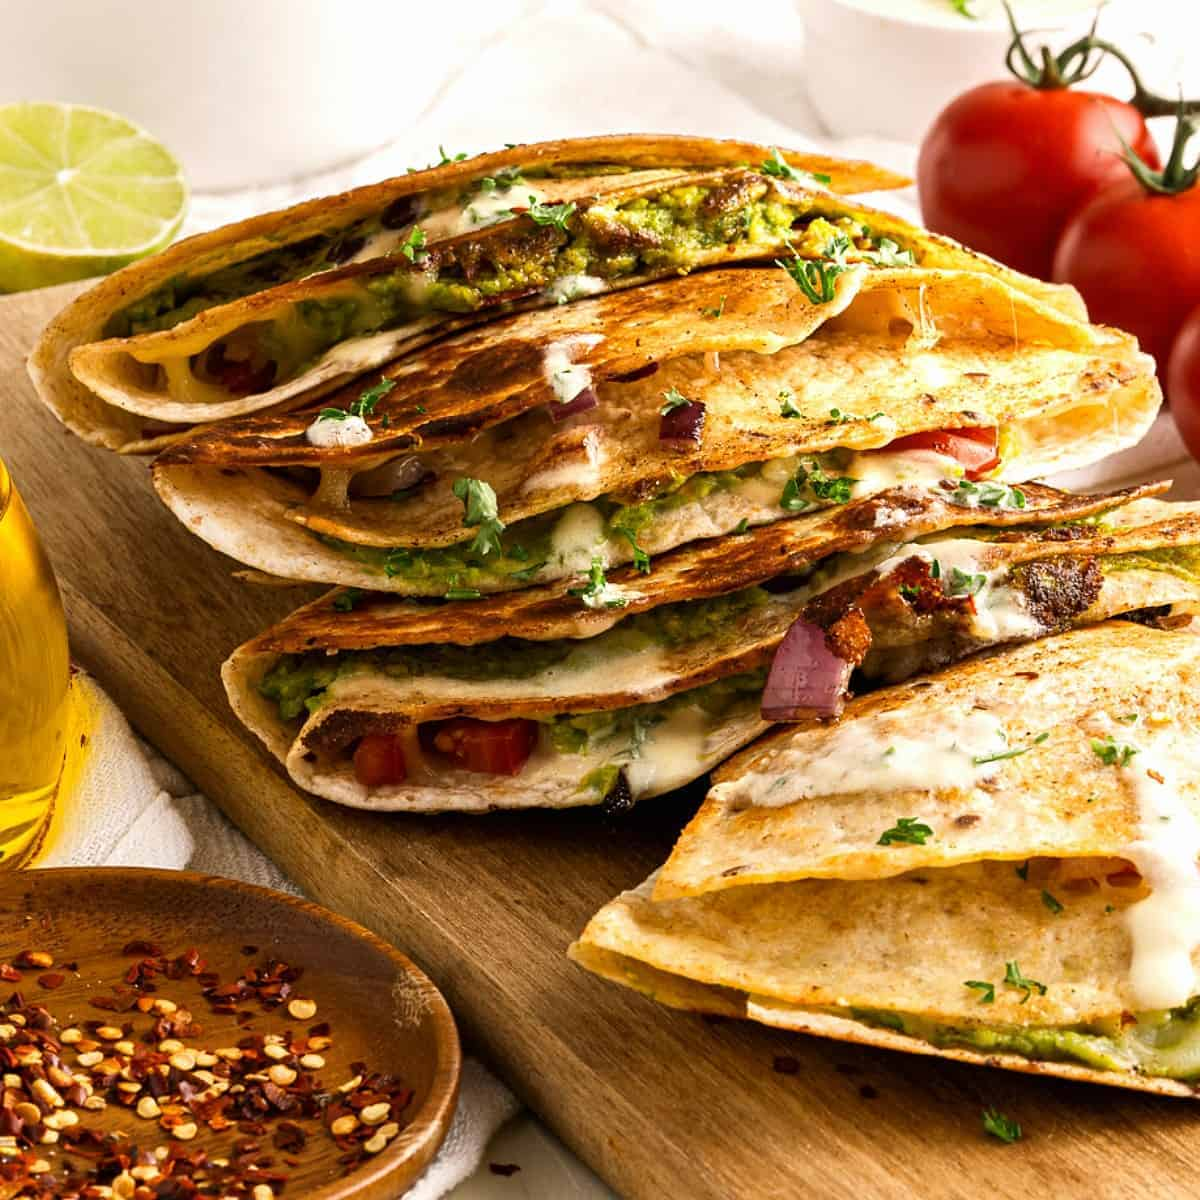 Front view of cooked and quesadillas that are stacked on top of each other.